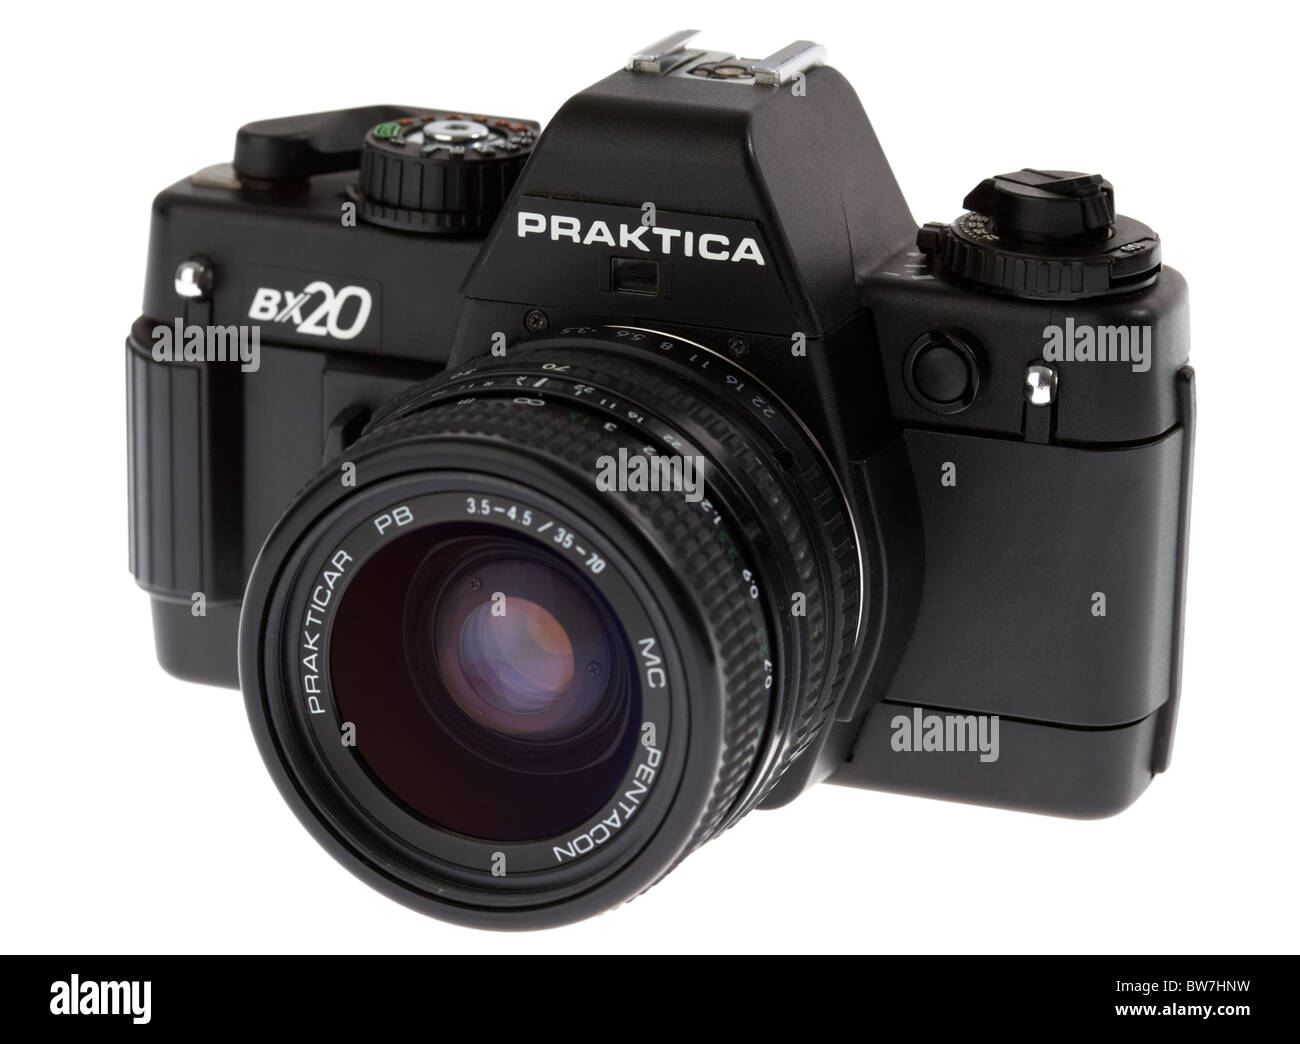 praktica bx20 35mm slr film camera manufactured in east germany in the 1980s with lens Stock Photo